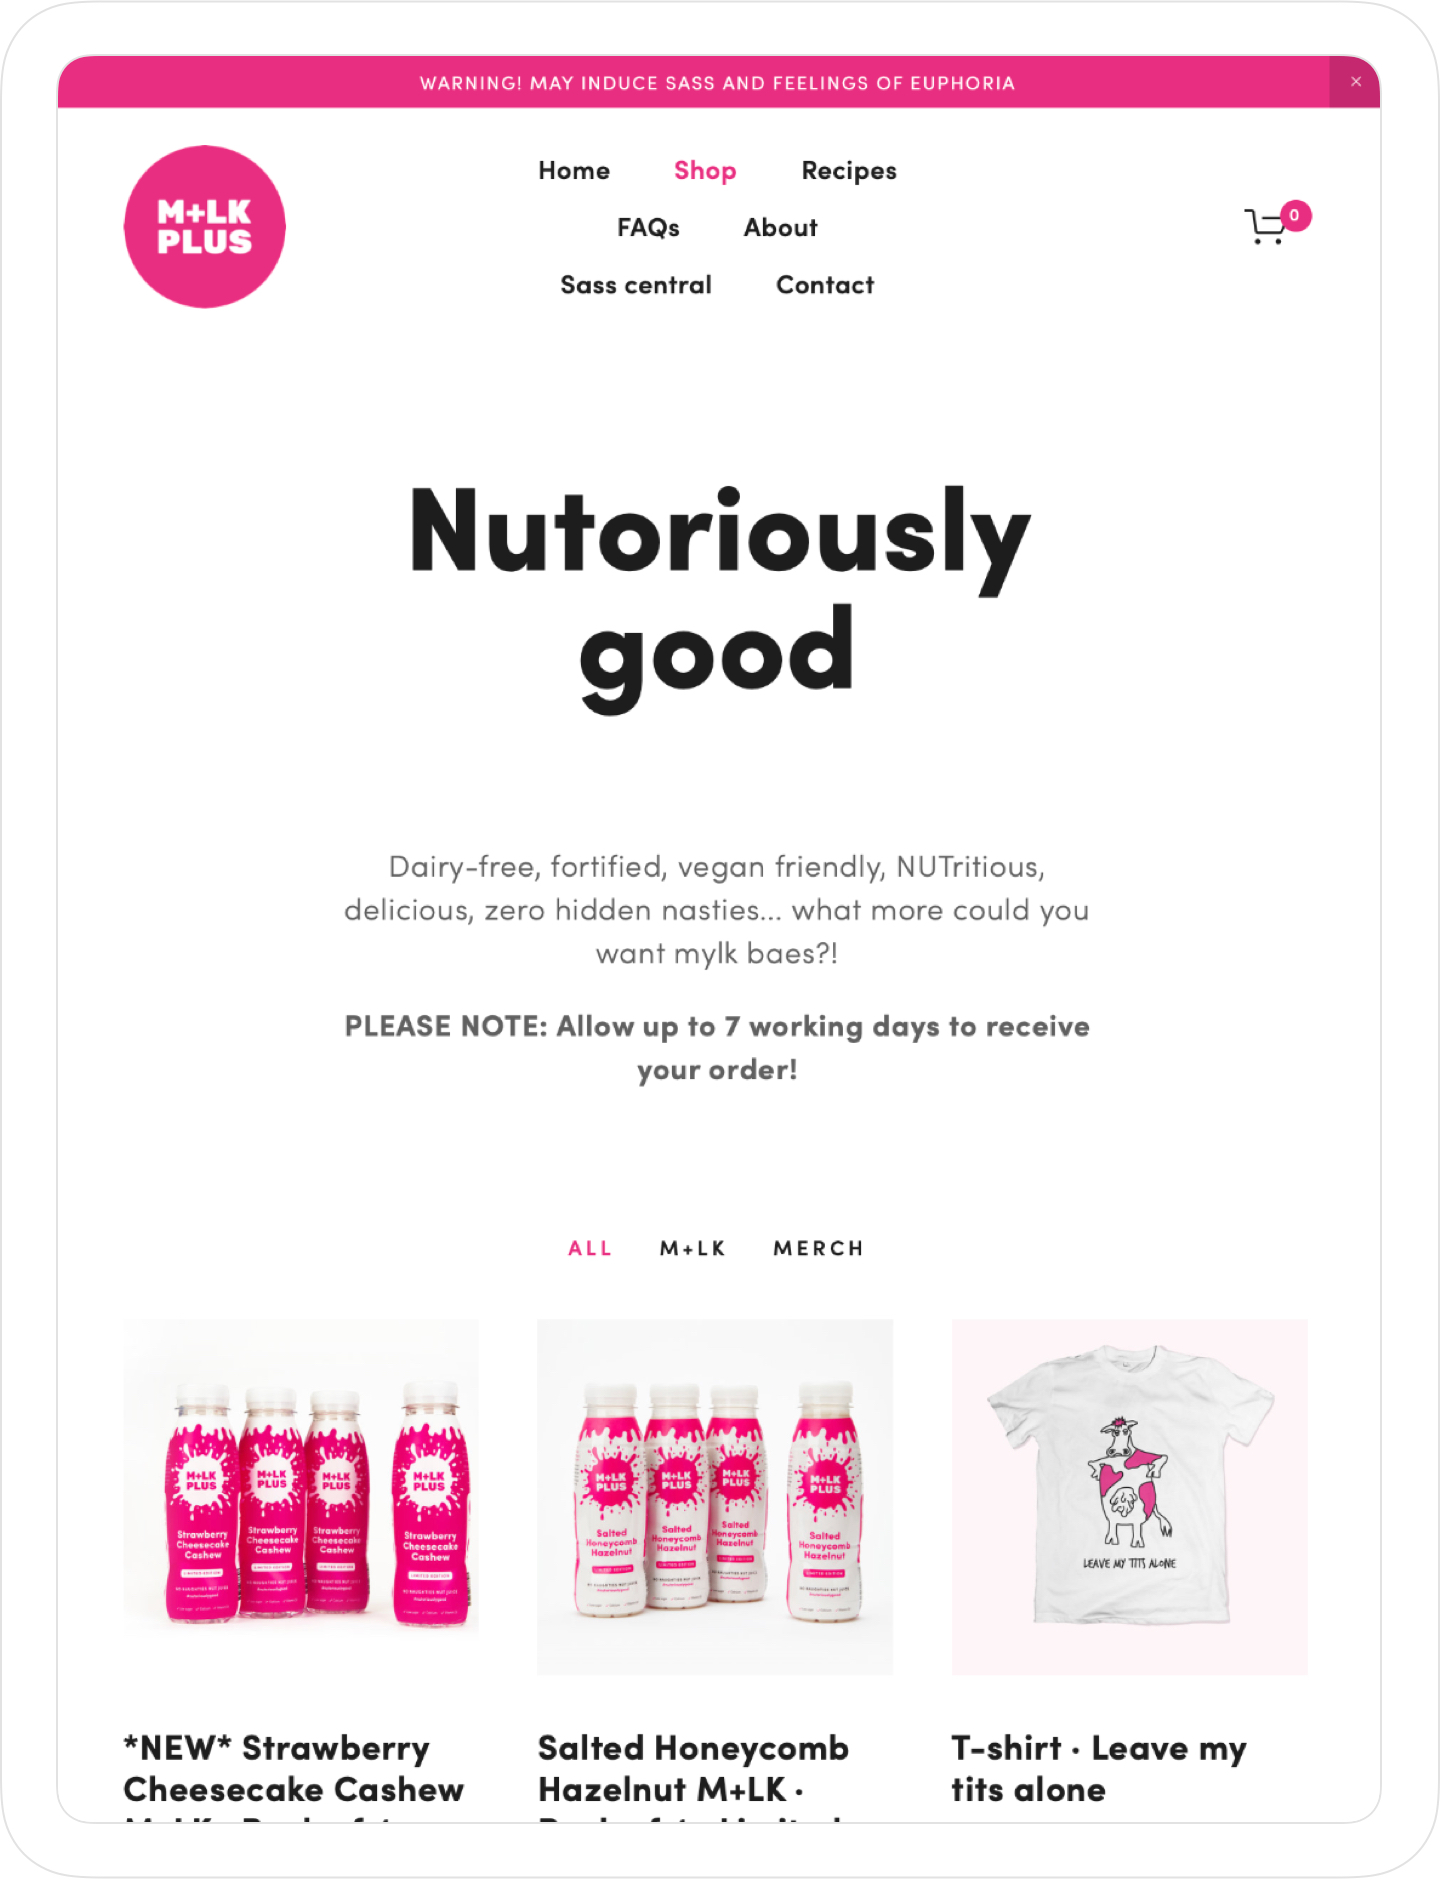 Responsive, colourful and creative website design by Jack Watkins for Camilla Ainsworth's nut milk brand, M+LKPLUS